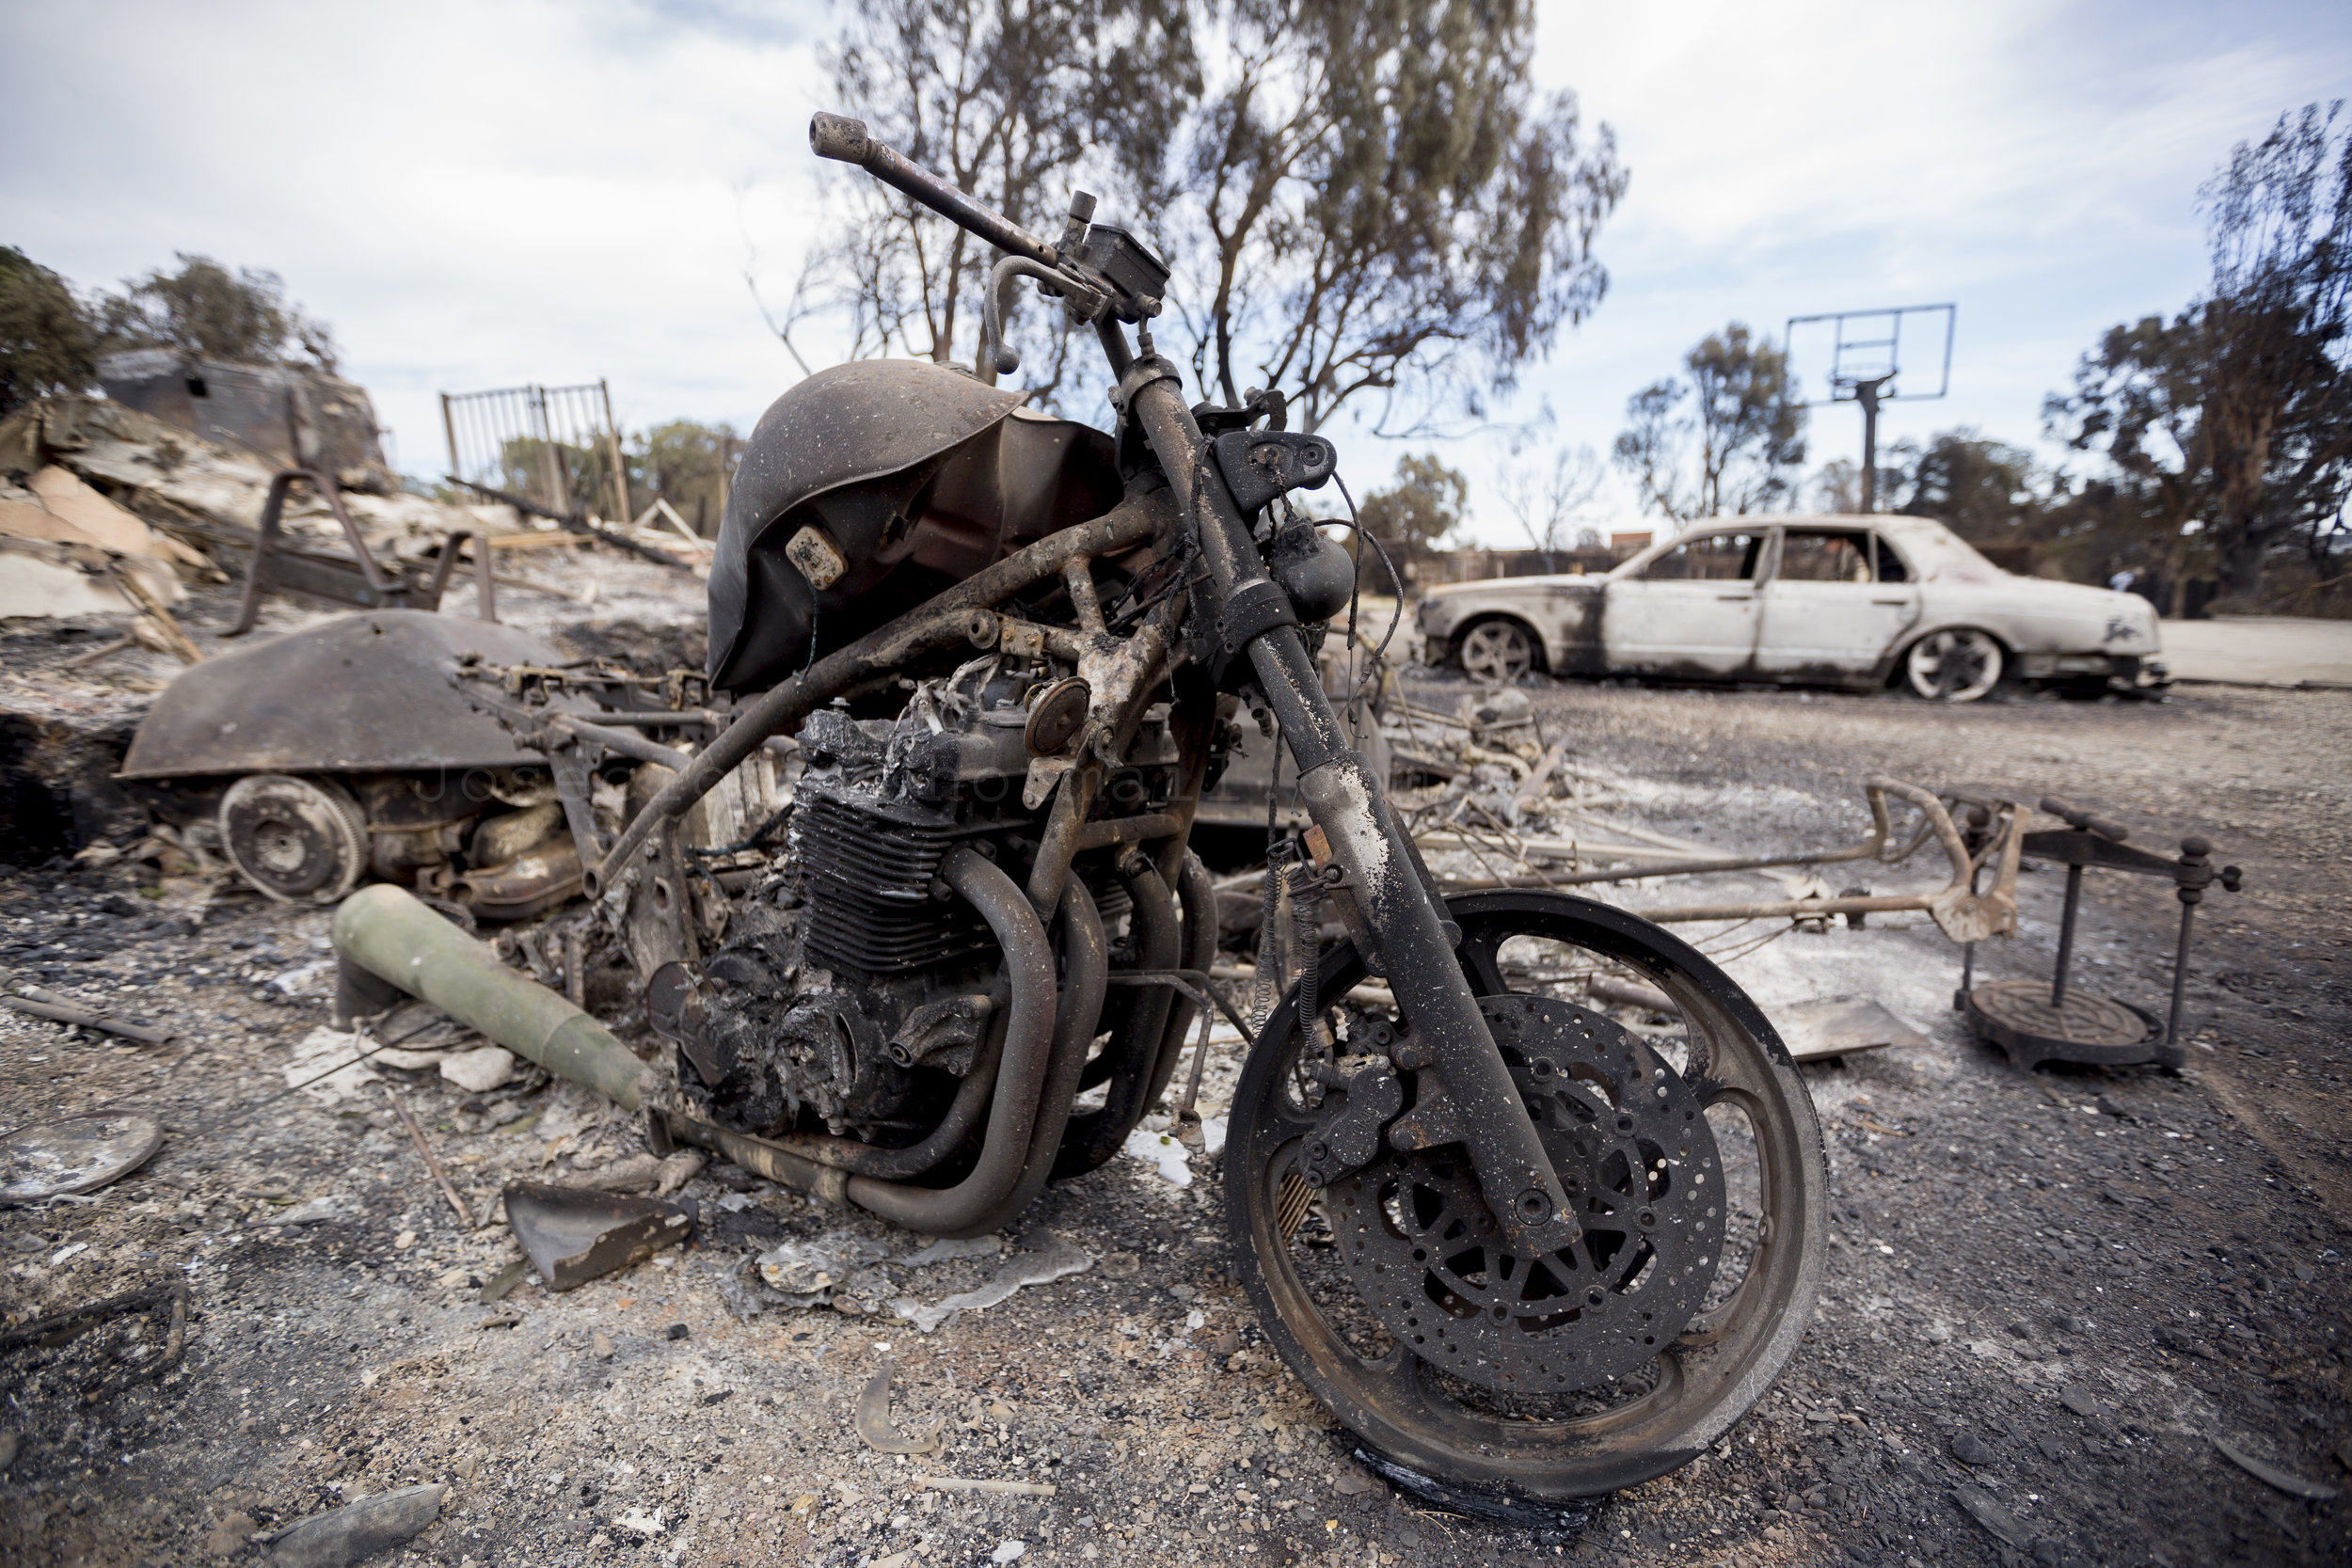 A motorcycle and car sit burned out by the Woolsey fire at a home along Harvester Road on November 14, 2018 in Malibu, Calif. (Jose Lopez)